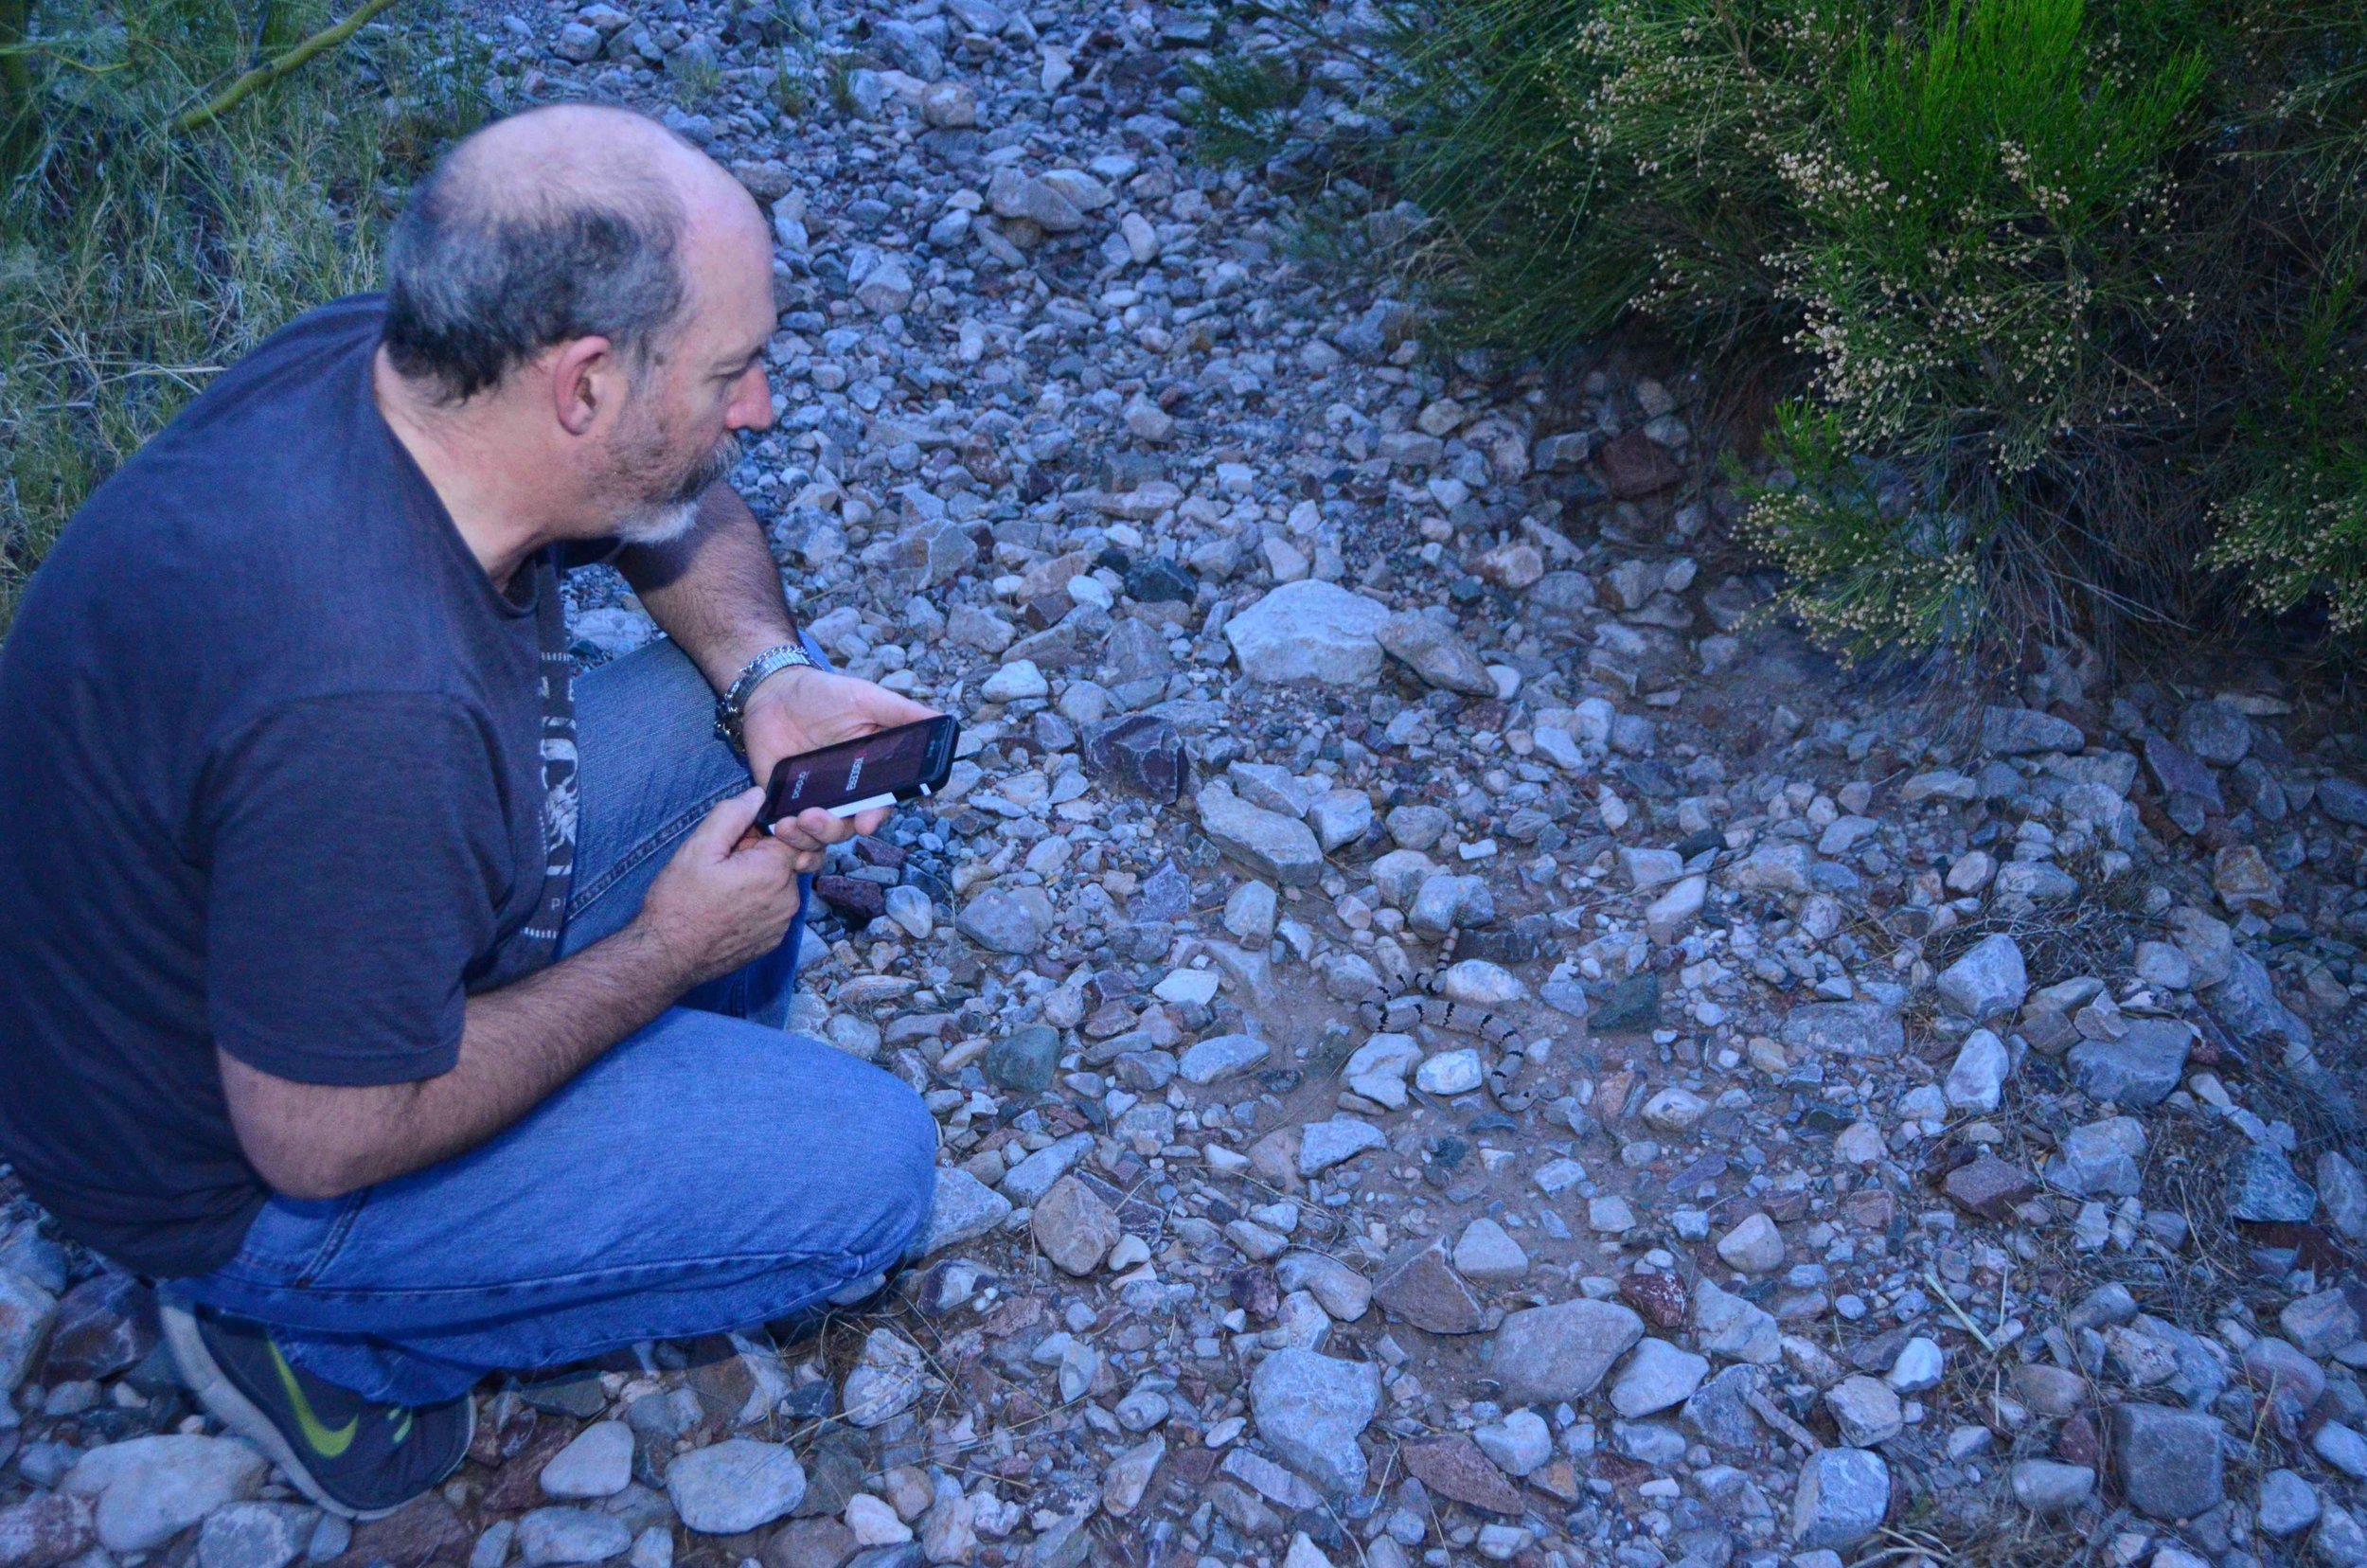 And who else would spot the banded rattlesnake? Of course, it was Dr. Paul Hyder.